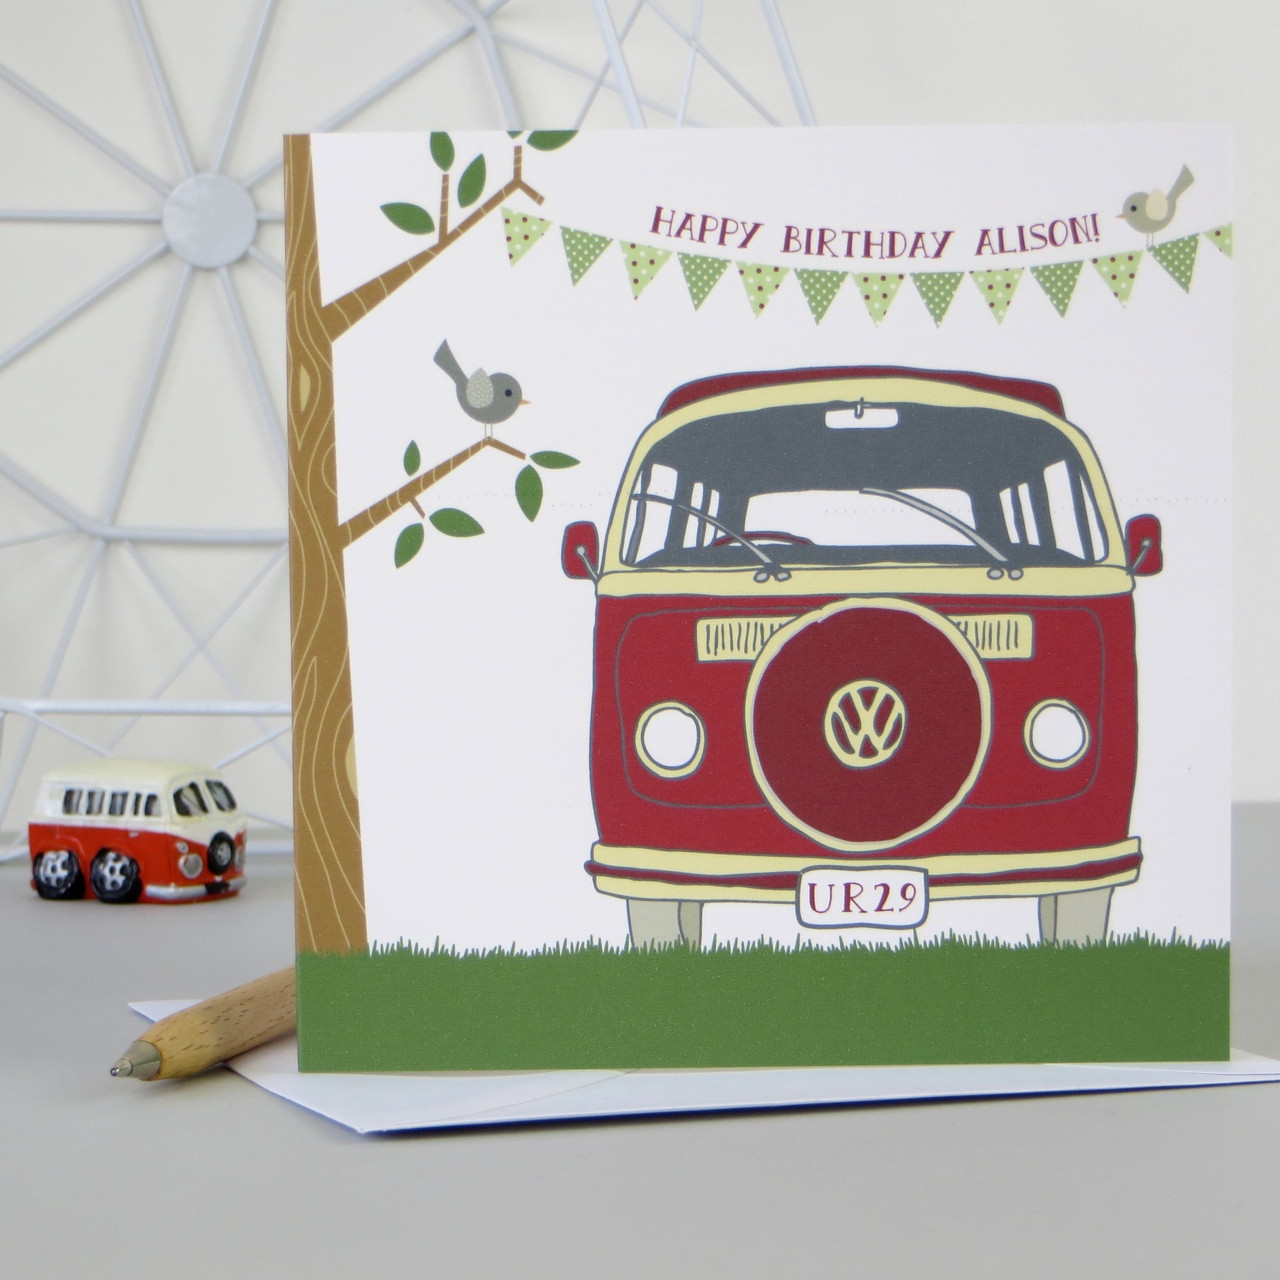 funny office picture ideas - Personalised Retro Camper Van Birthday Card